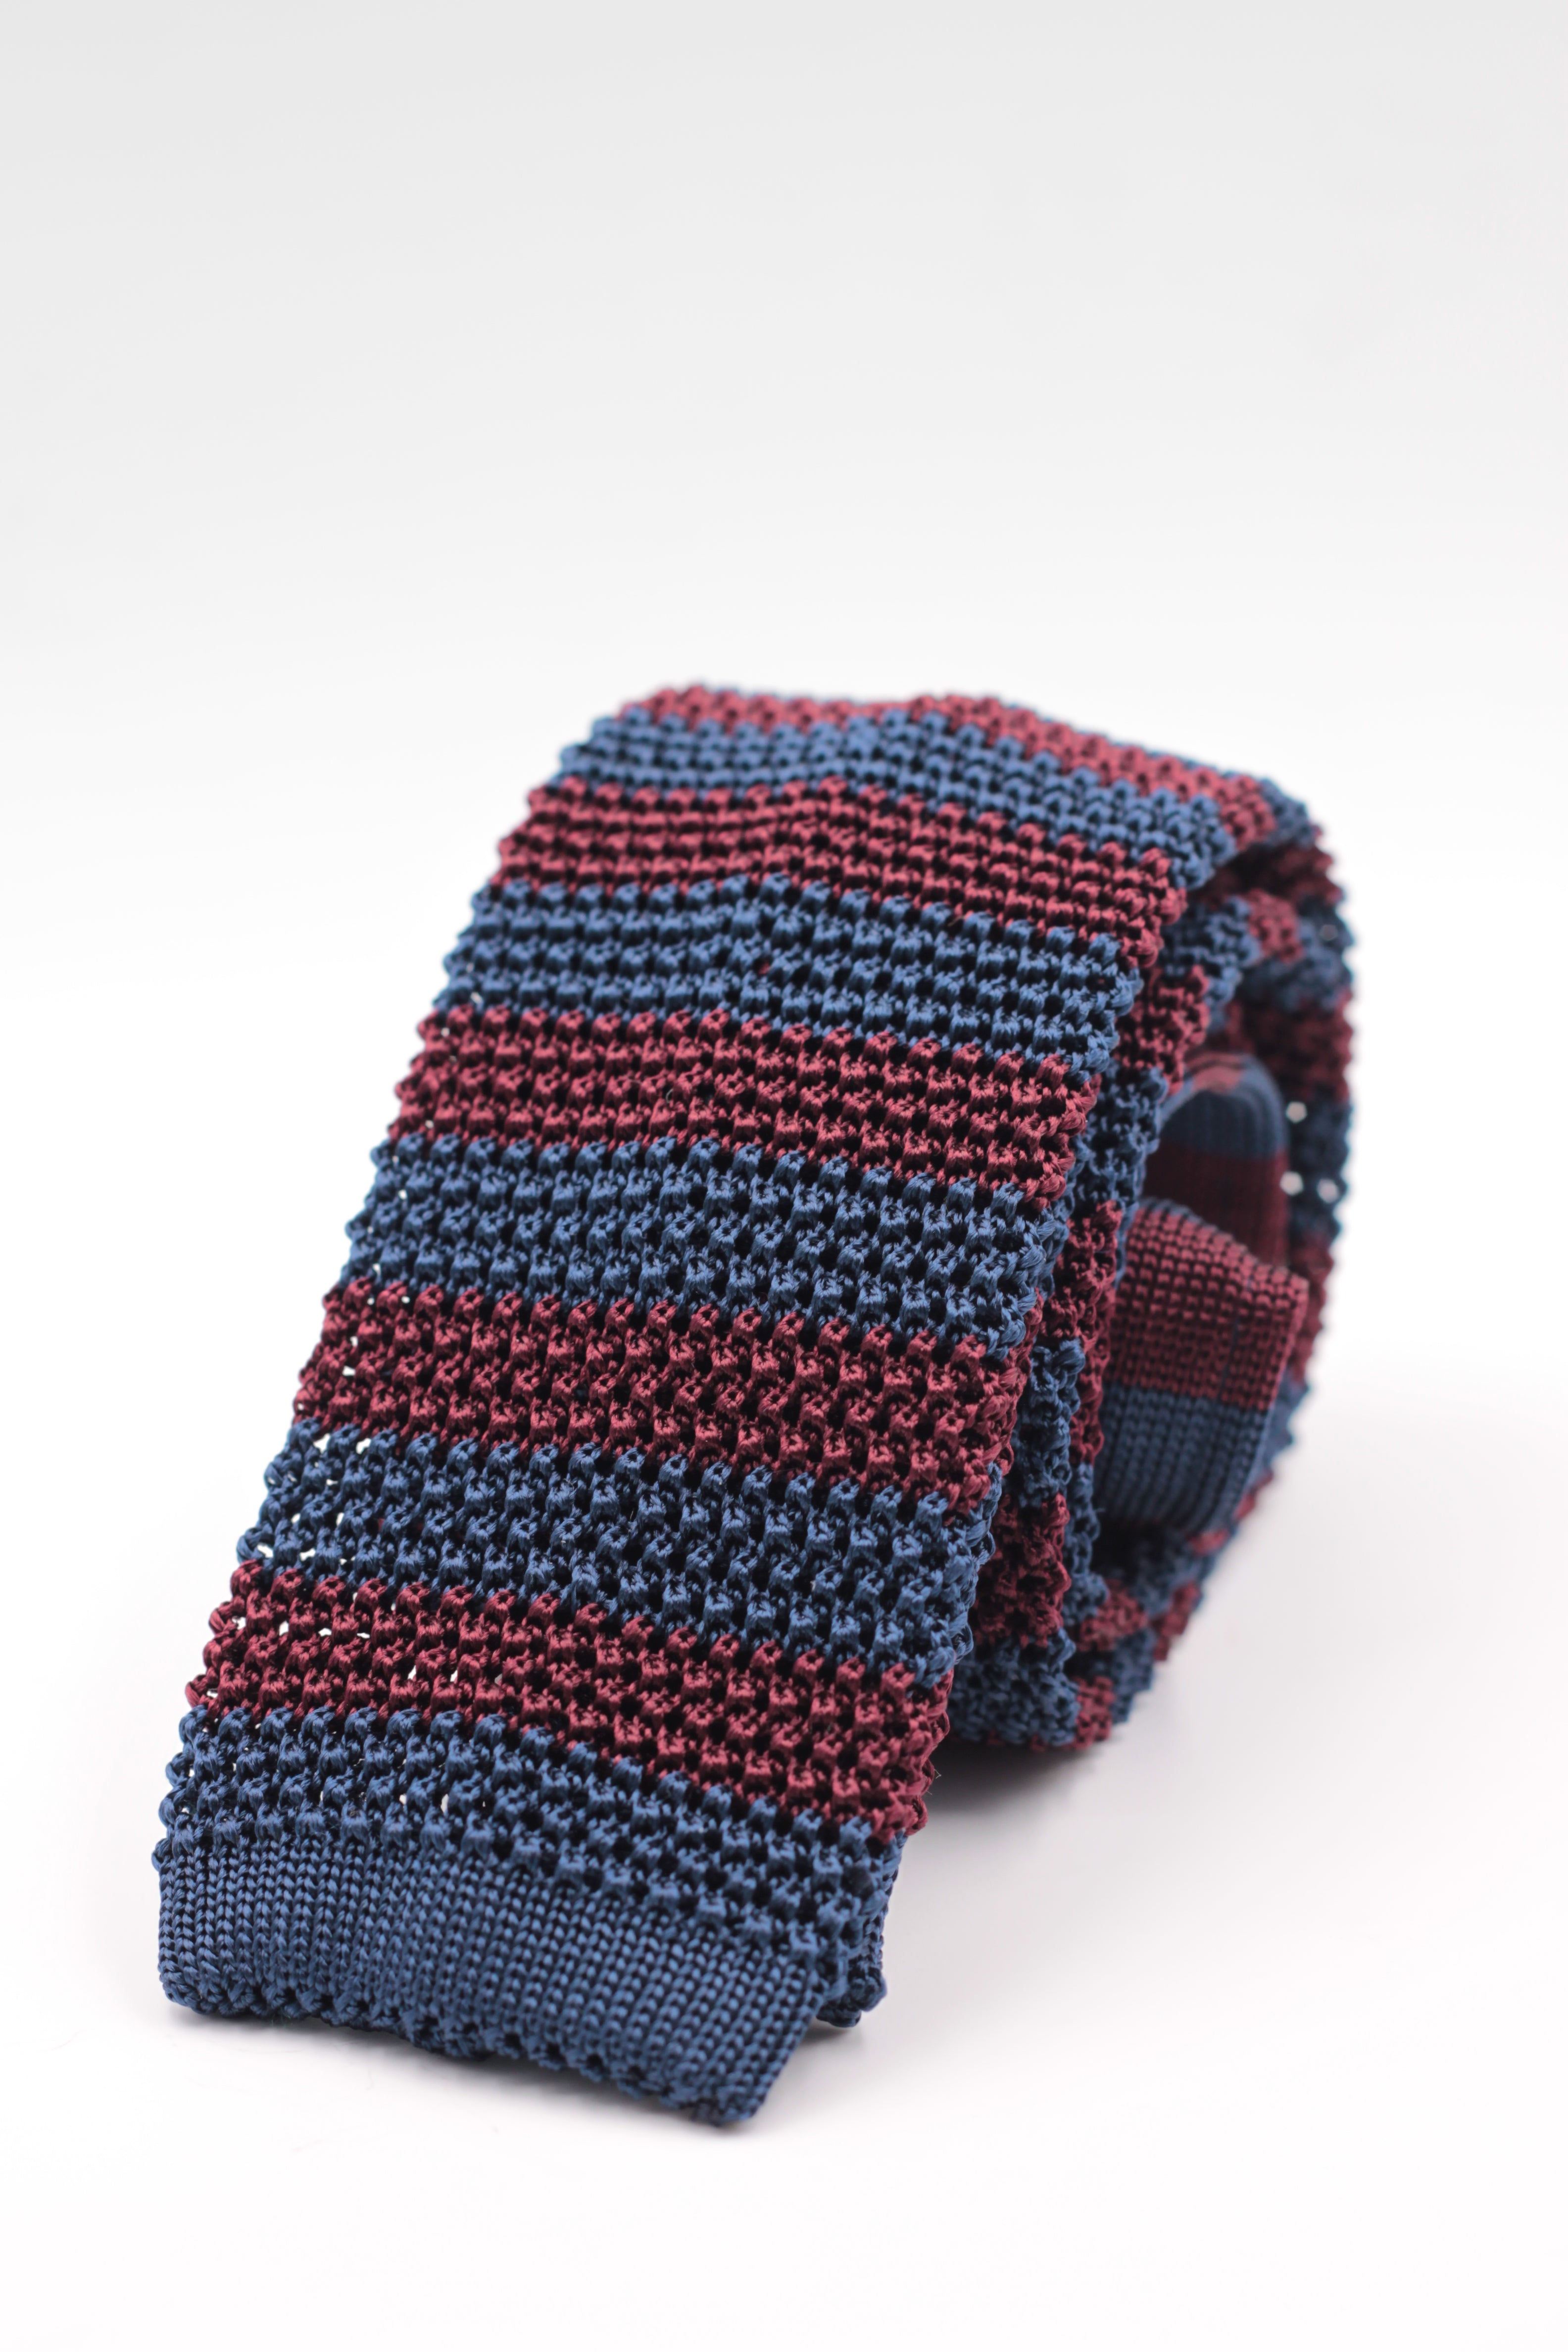 Cruciani & Bella 100% Knitted Silk Blue and Burgundy stripe tie Handmade in Italy 6 cm x 147 cm